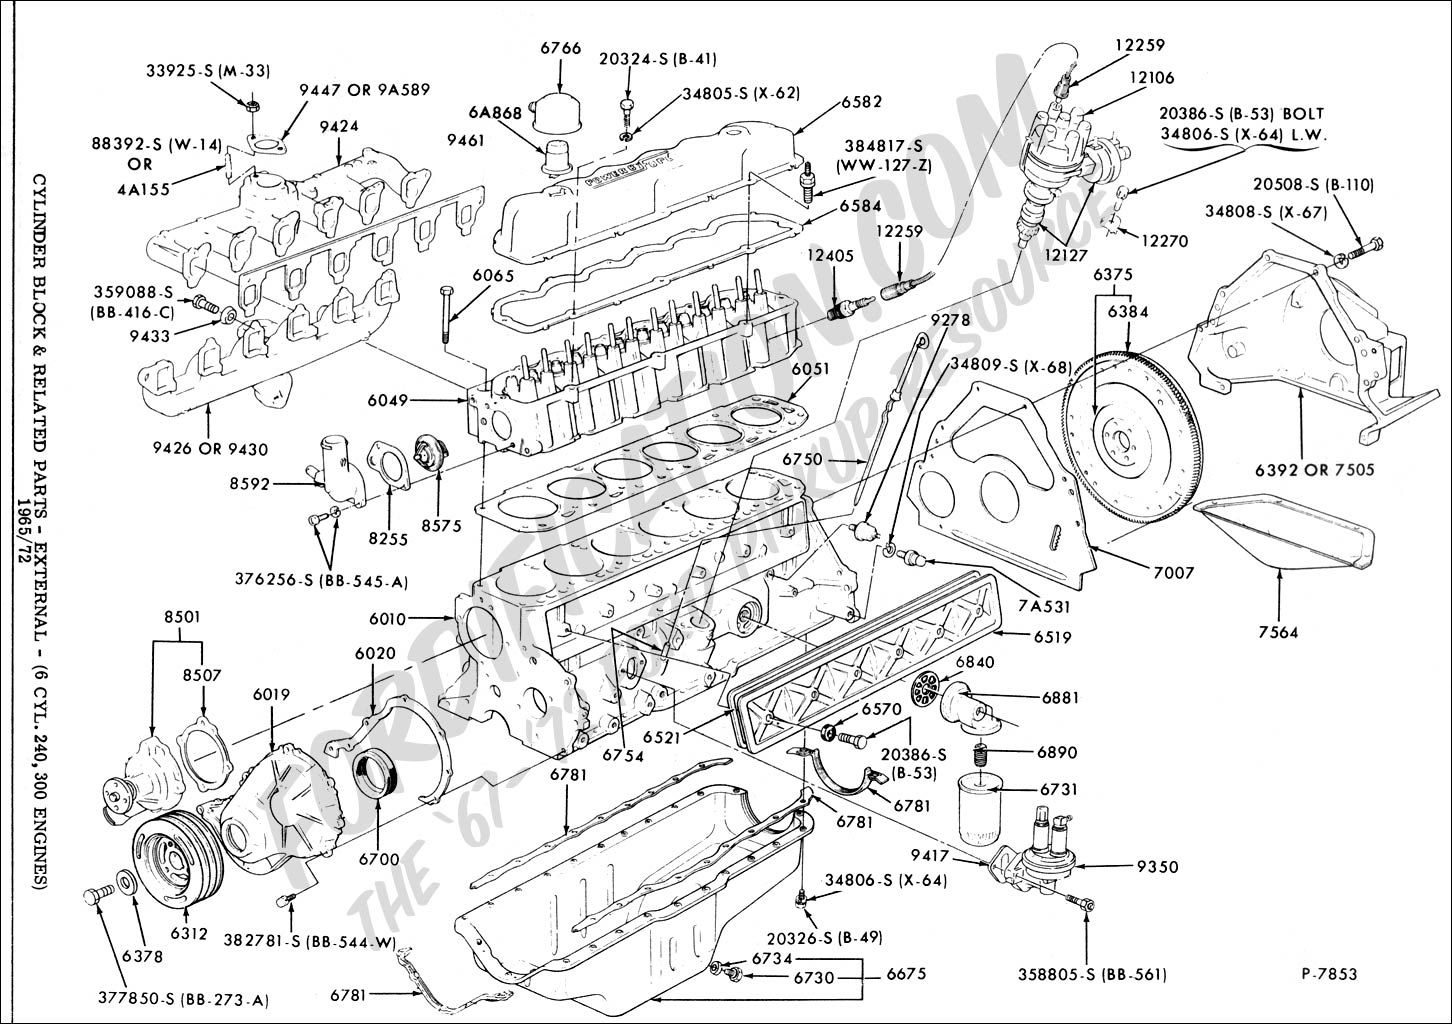 Ford Straight 6 Engine Diagram Ford Truck Ford F150 Engineering